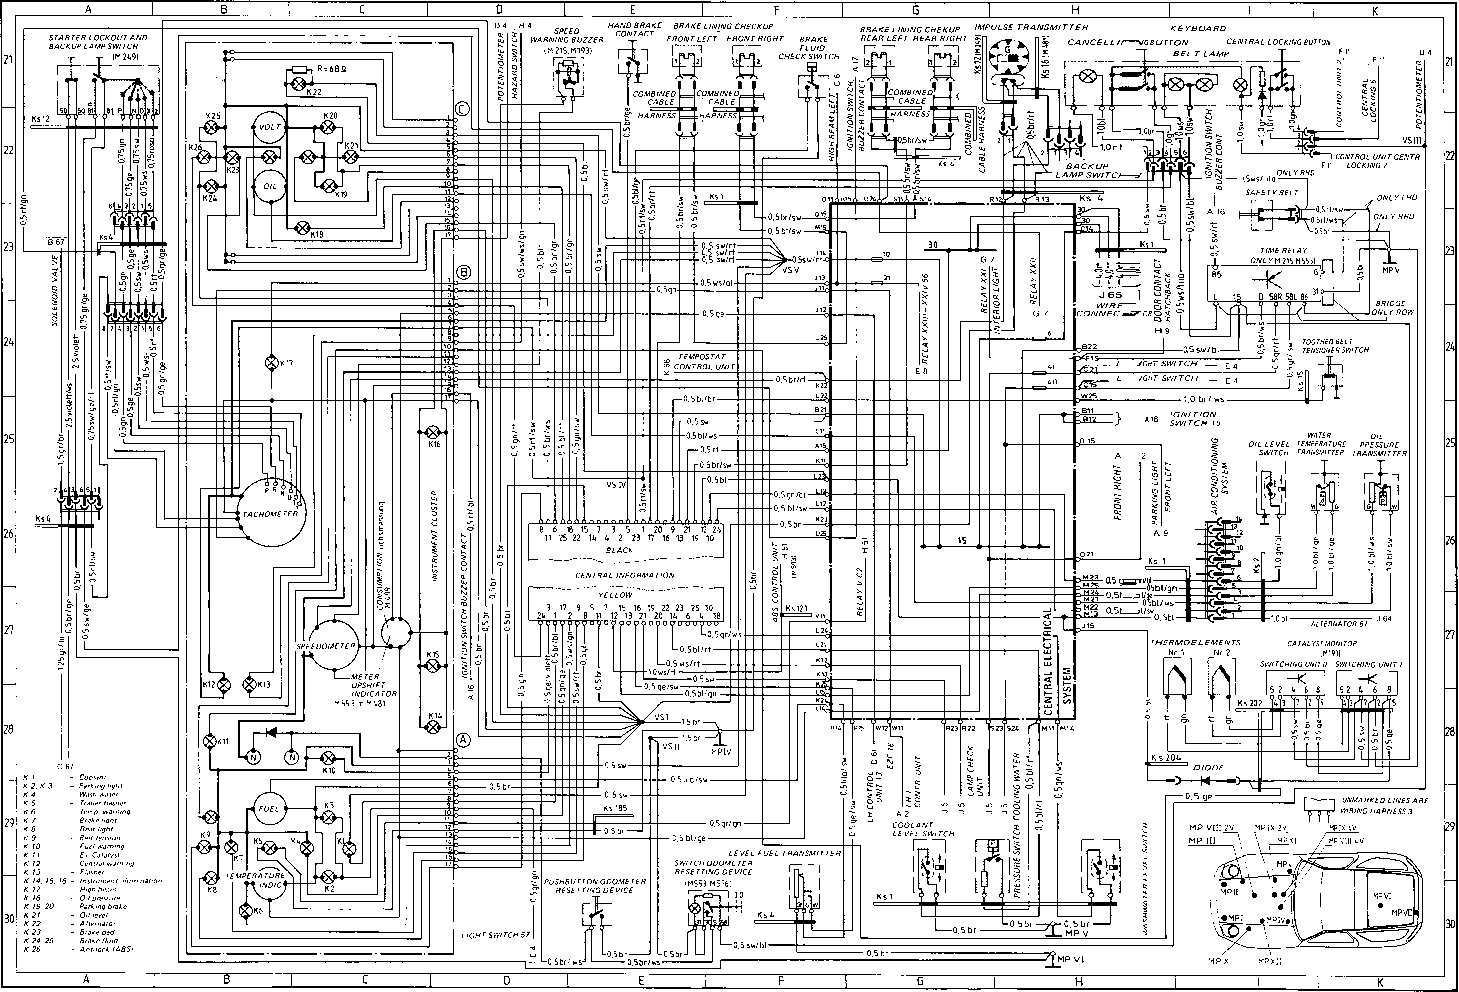 diagram] 1987 porsche wiring diagram full version hd quality wiring diagram  - raindiagram.pachuka.it  diagram database - pachuka.it